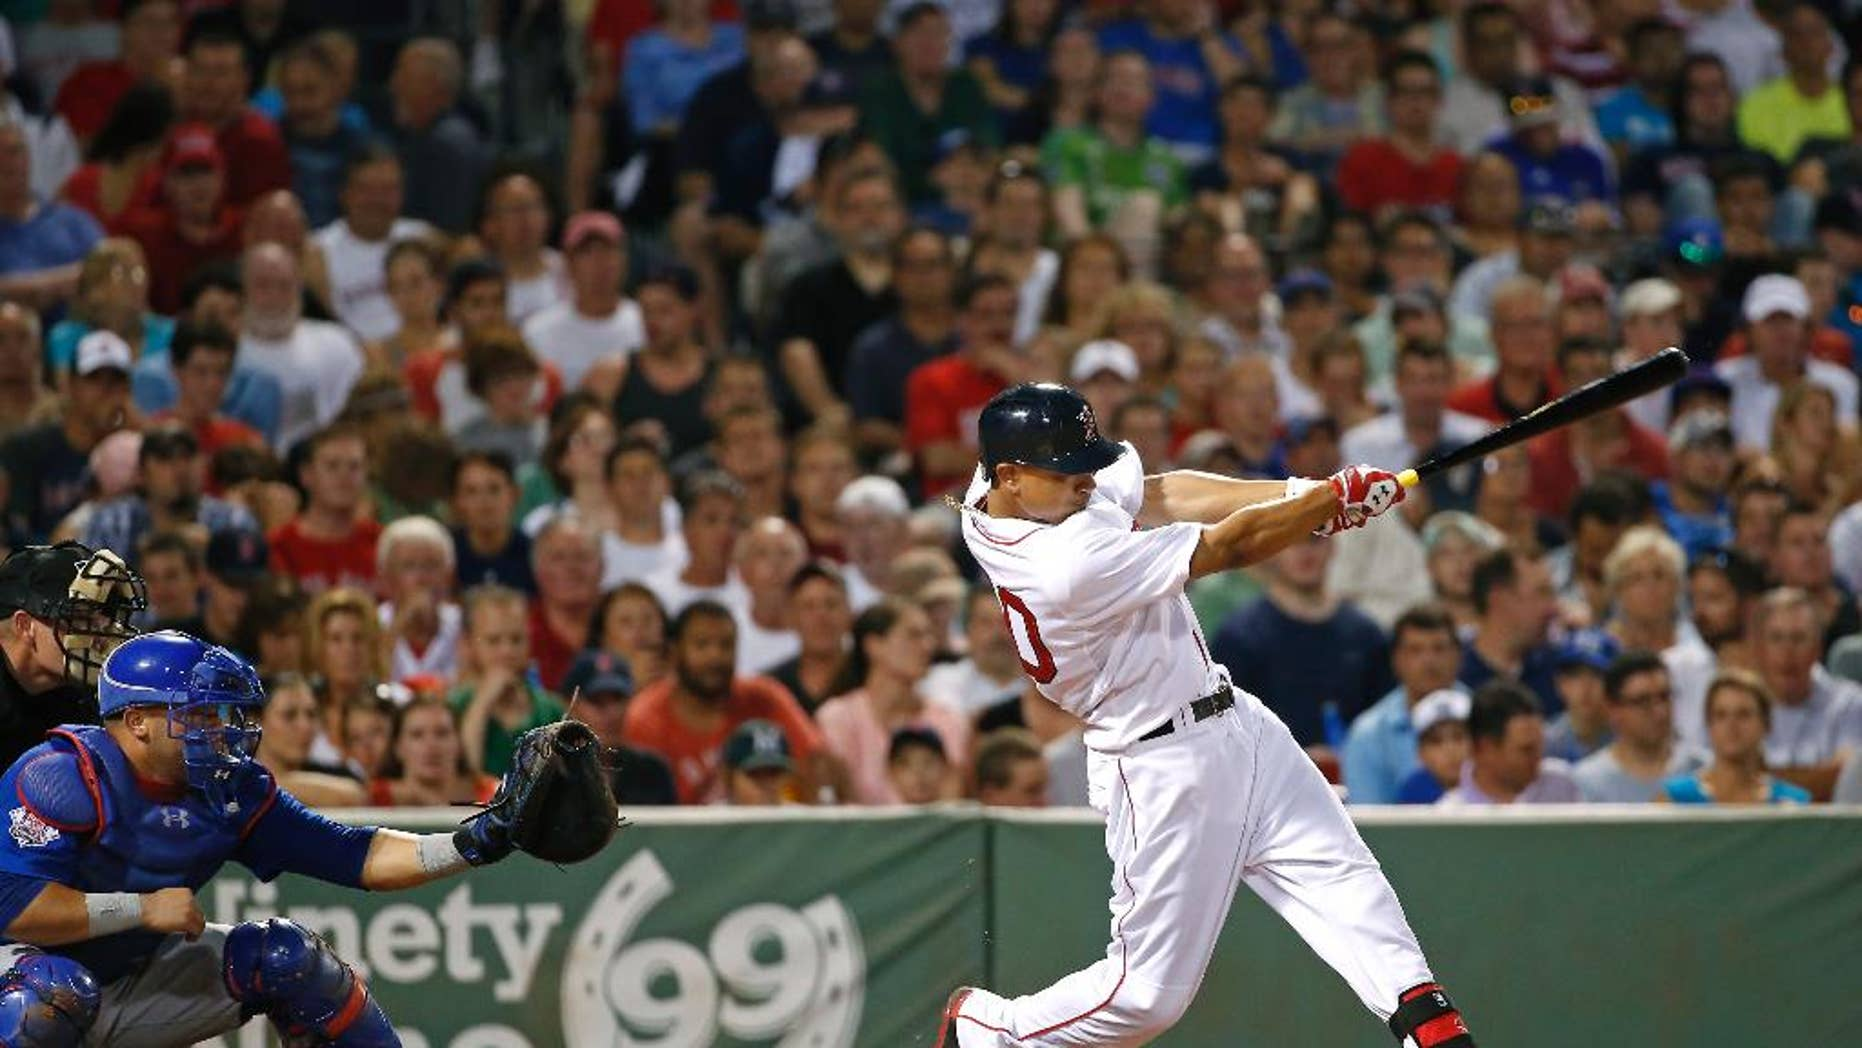 Boston Red Sox's Mookie Betts, right, hits a two-run home run in the fifth inning of a baseball game against the Chicago Cubs at Fenway Park in Boston, Wednesday, July 2, 2014. (AP Photo/Elise Amendola)